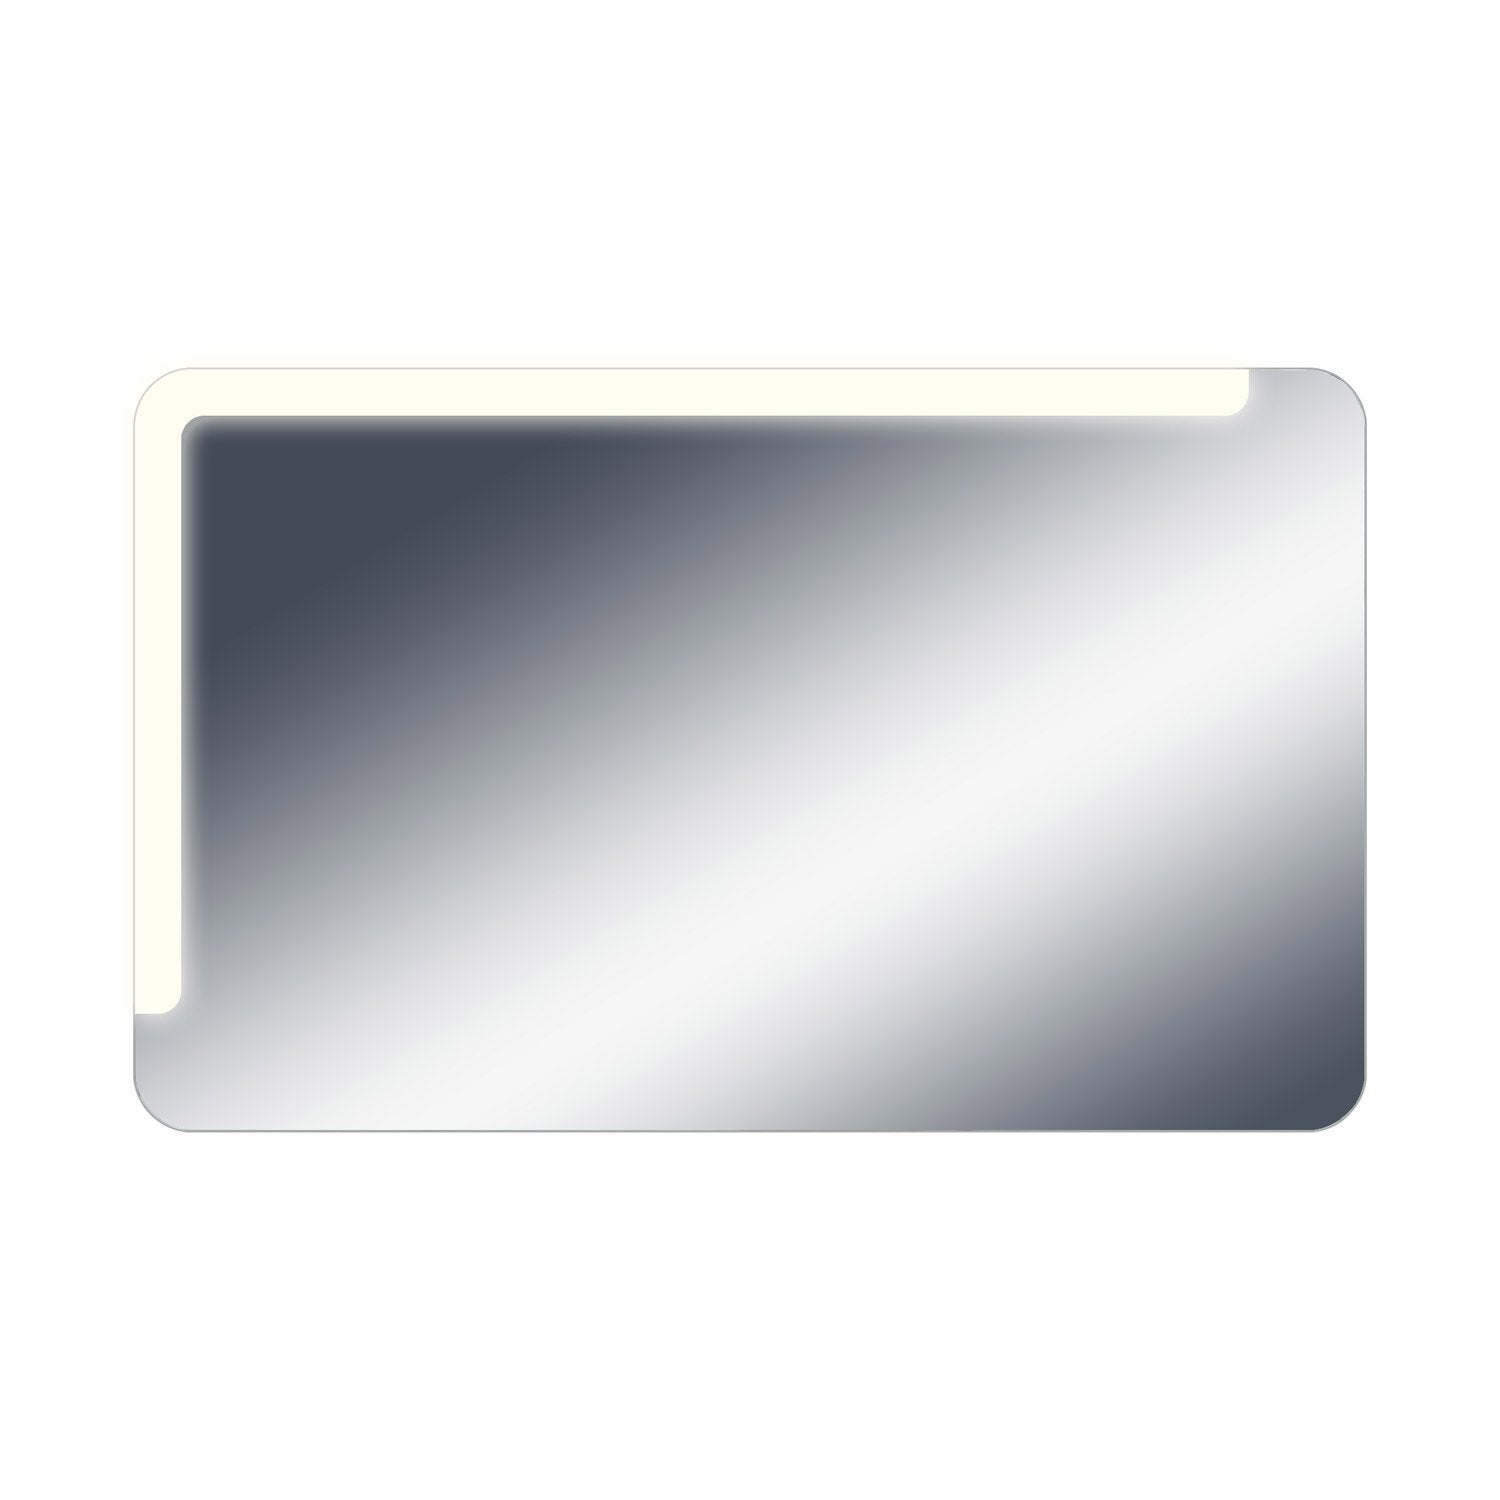 Miroir lumineux avec clairage int gr x cm neo shine leroy merlin for Pots lumineux leroy merlin